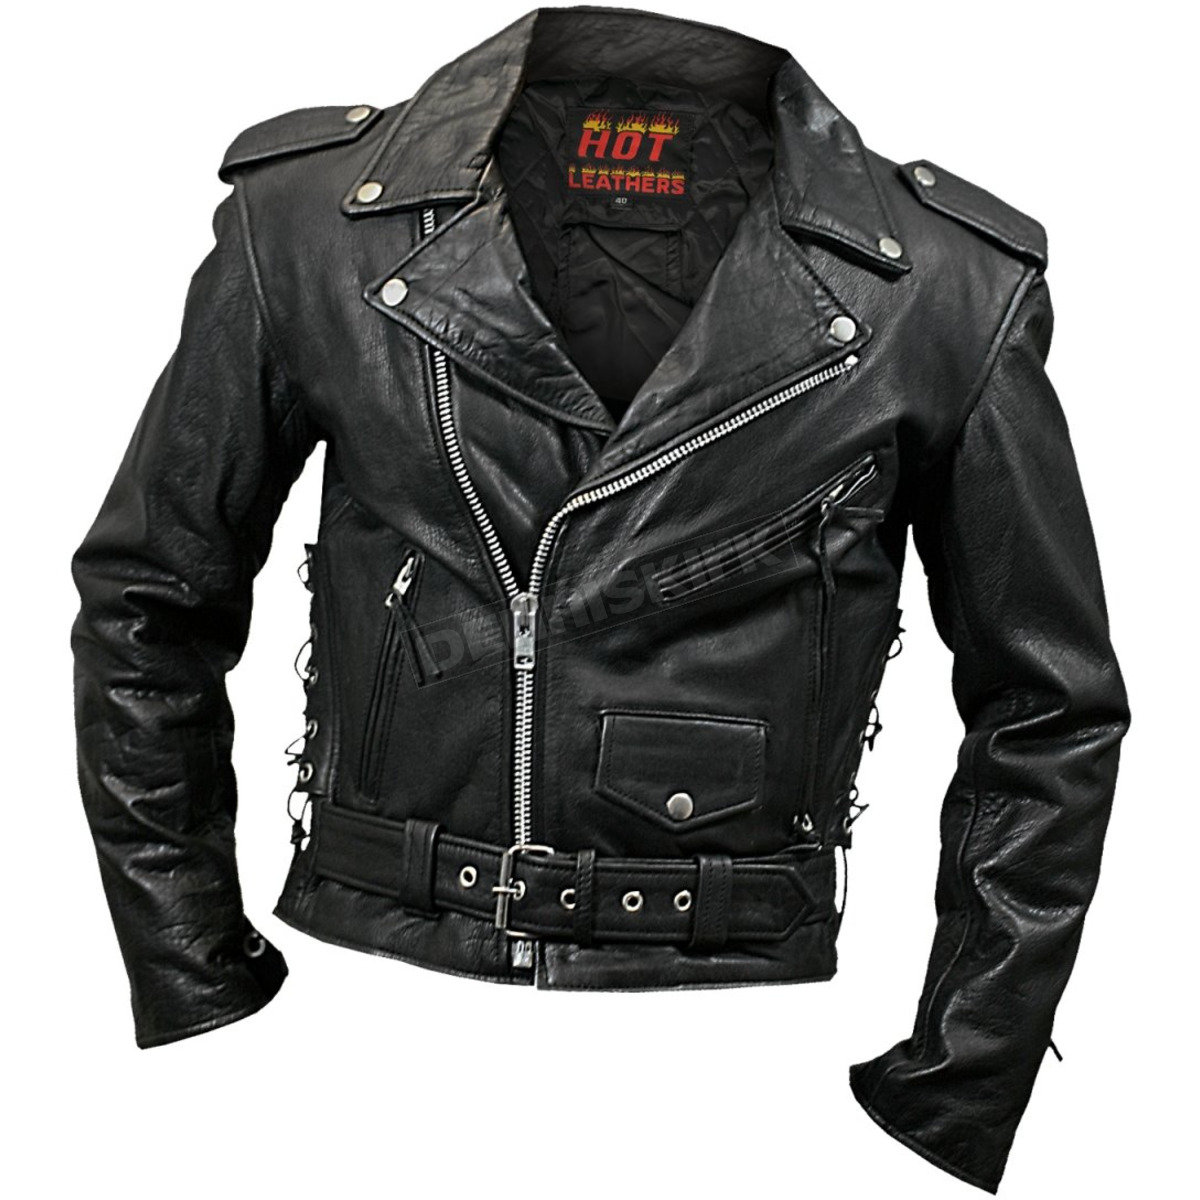 motorcycle classic jacket leather biker mens leathers harley jackets davidson goldwing clothing apparel denniskirk wear kirk dennis motorcycles xl riding